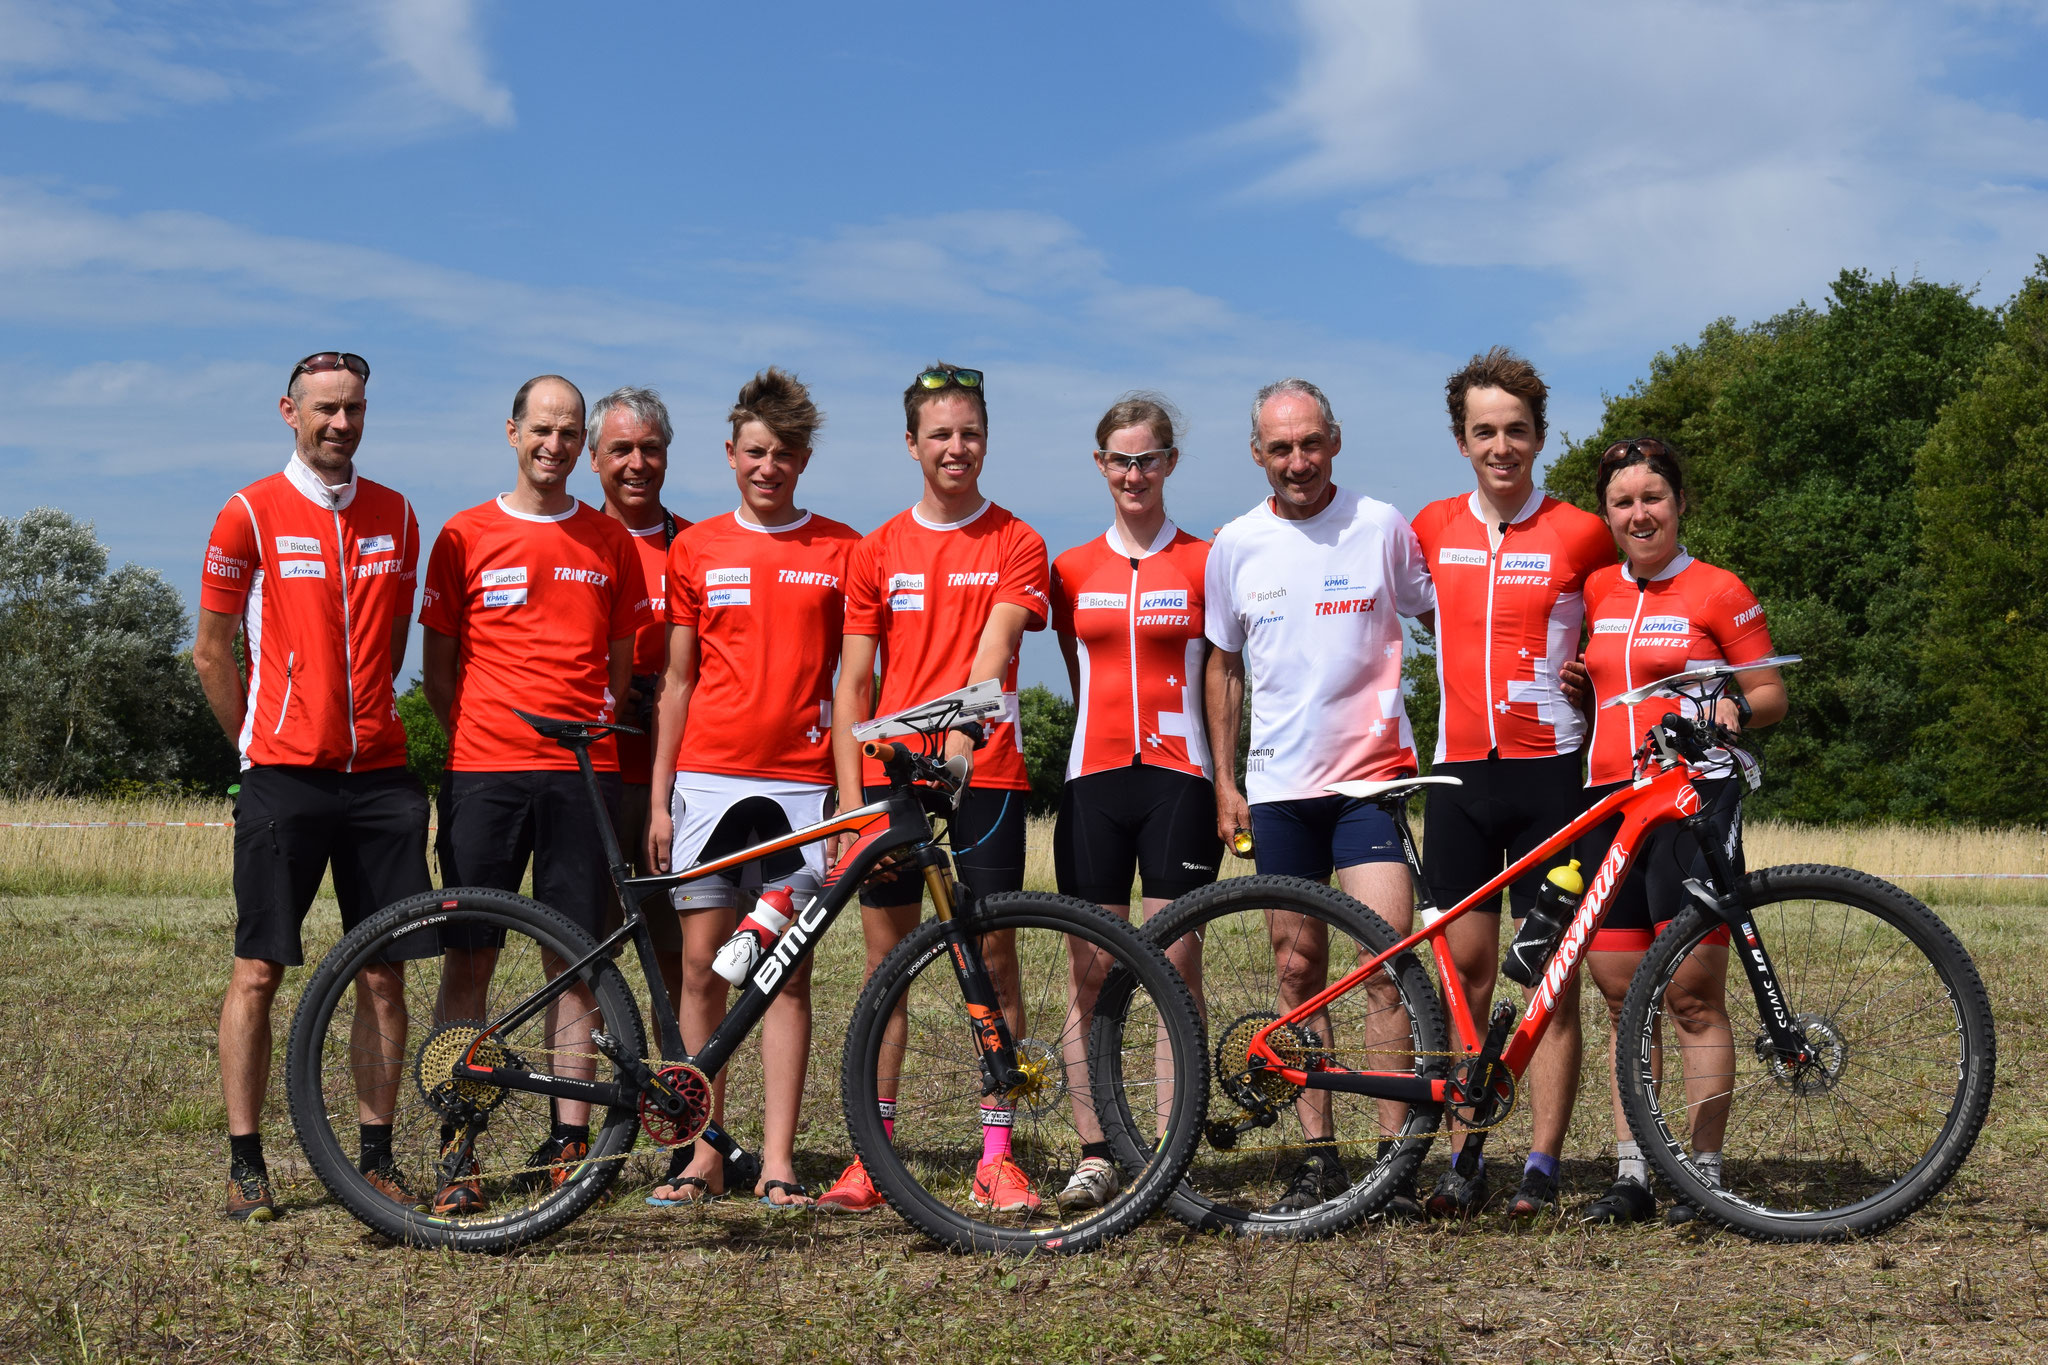 The Swiss Team at the European champs! (Christine Schaffner)